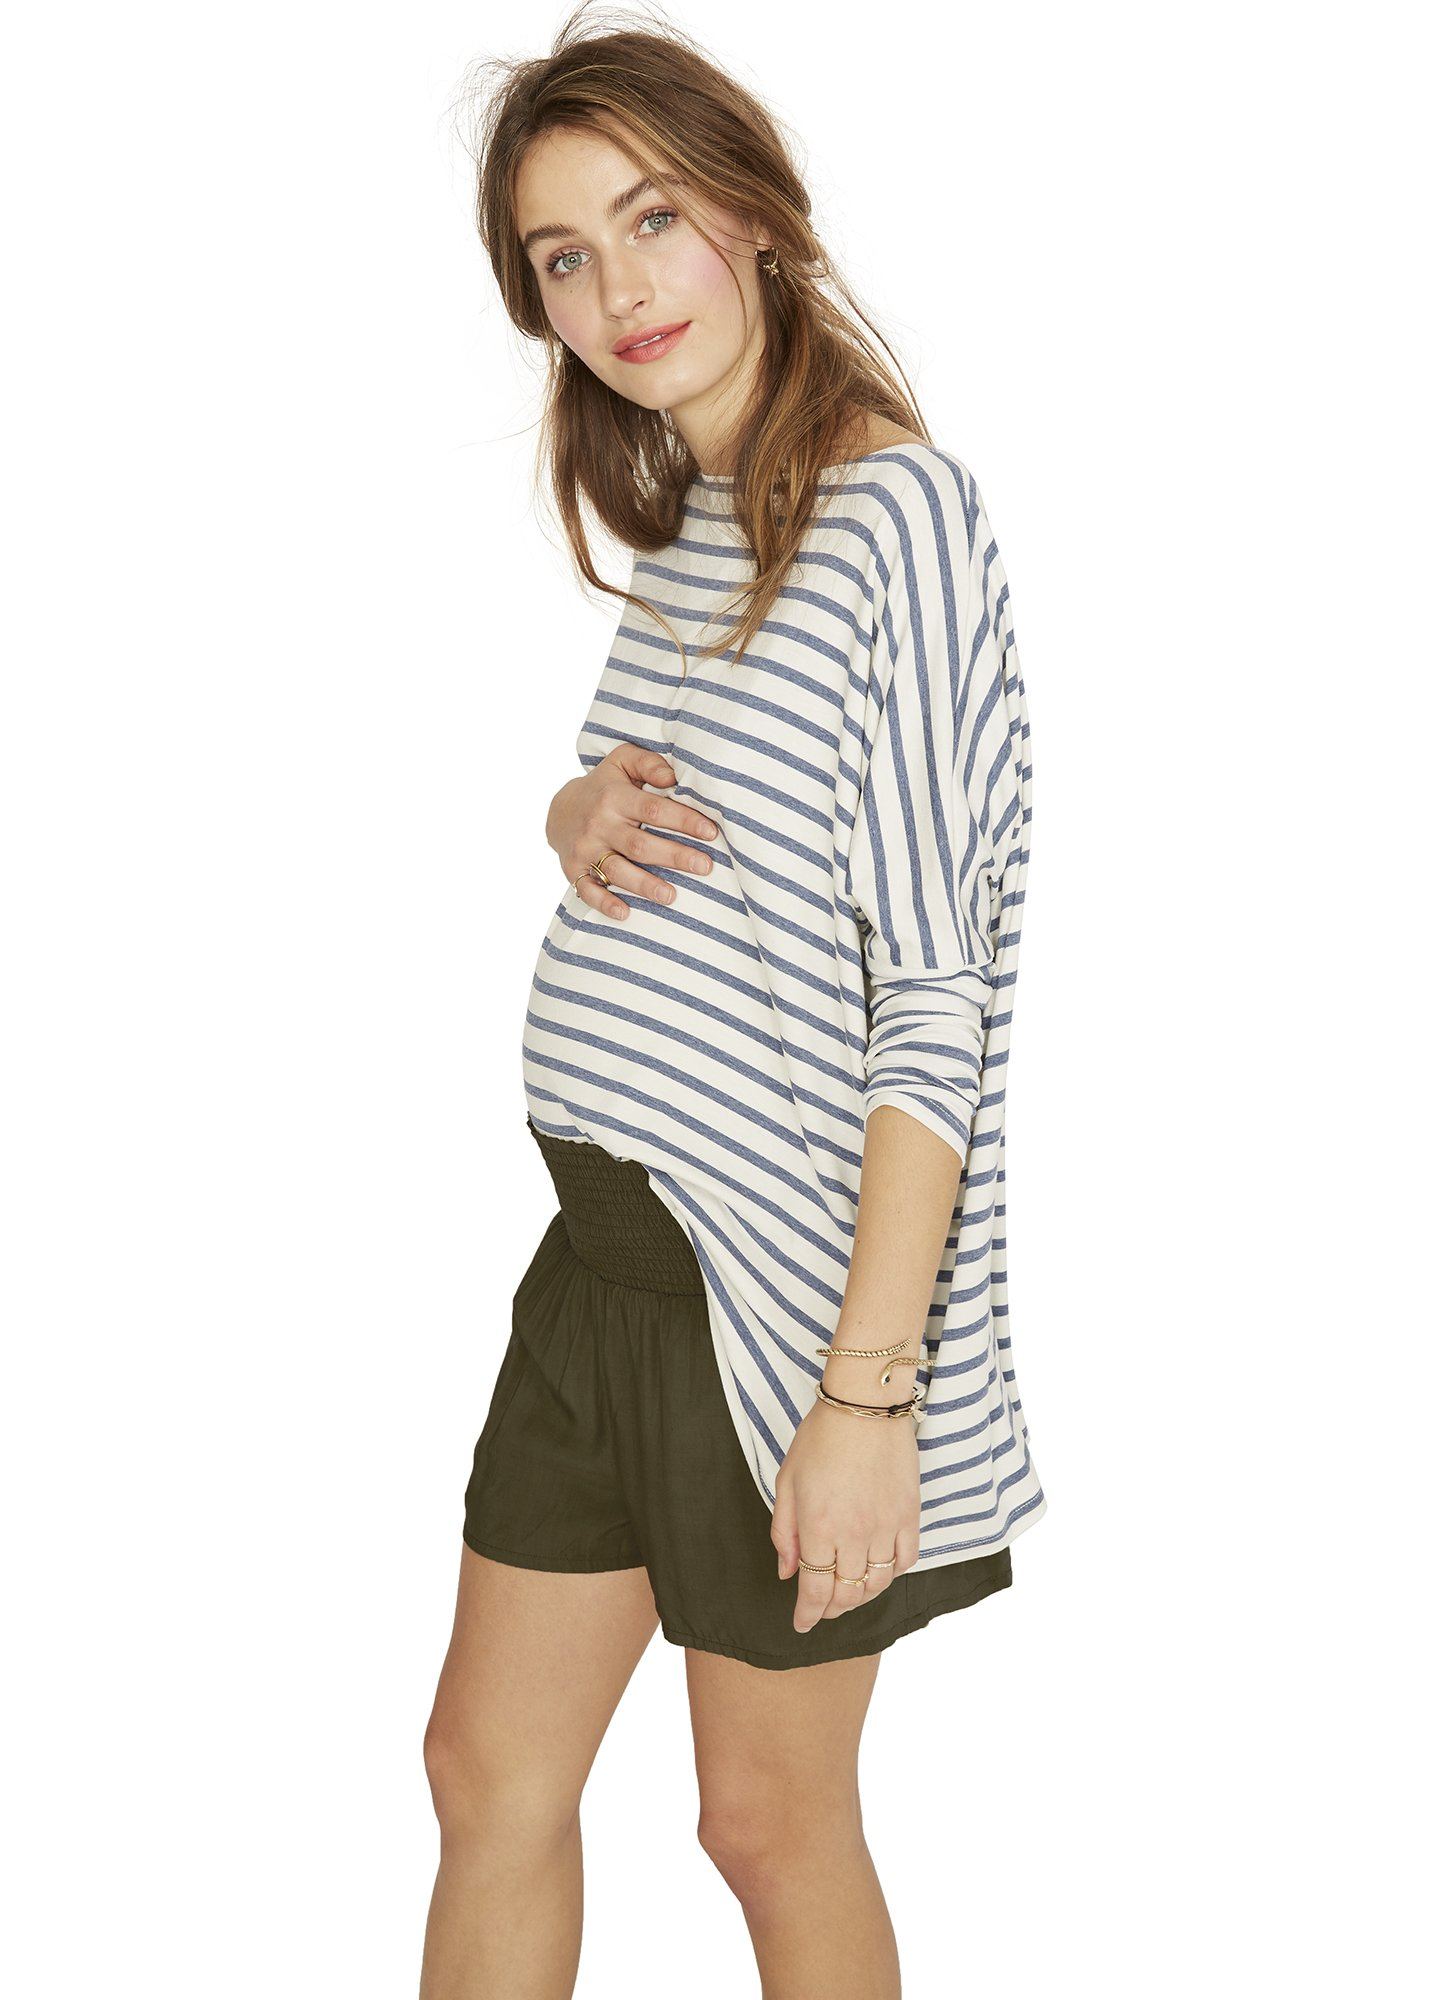 The longsleeve tee - I would own WAY more items from Hatch Collection if it was not so expensive, but this trendy high-end line has some amazing essentials that can carry you all the way through pregnancy. I bought The Longsleeve Tee in my first trimester and have worn it every week. For special occasions they also make beautiful dresses and I am pretty much obsessed with all of their maternity jumpsuits.